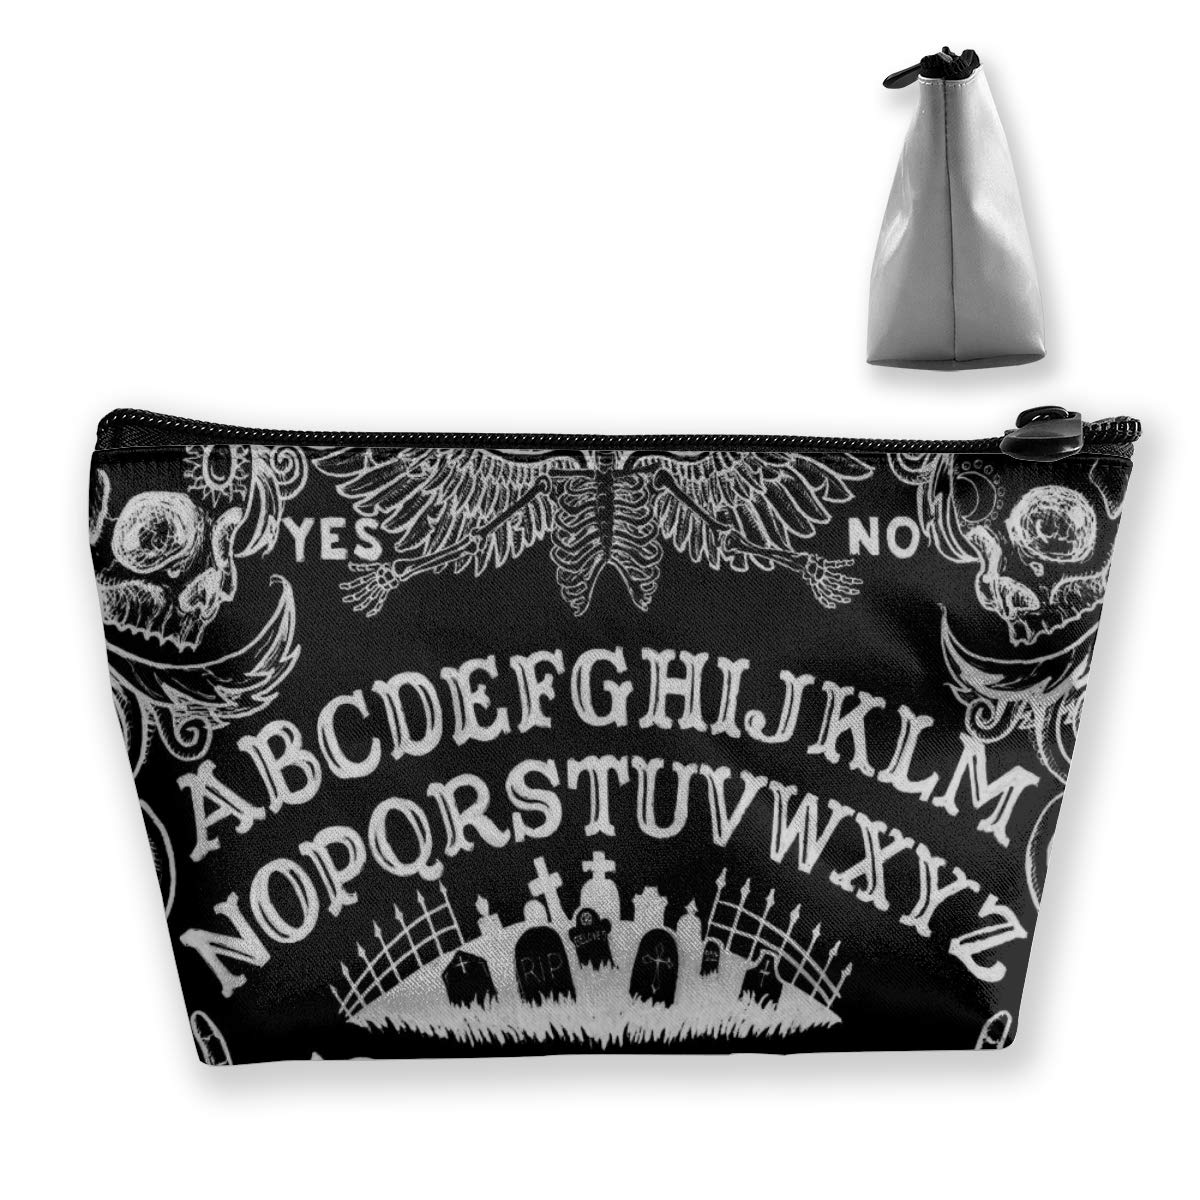 Women Girls Makeup Cosmetic Case Pouch for Cosmetics Digital Accessories Trip, Large Capacity Travel Makeup Train Case Multifunction Tote Bag, Spirit Witch Board Black Gothic Goth Occult Witchcraft